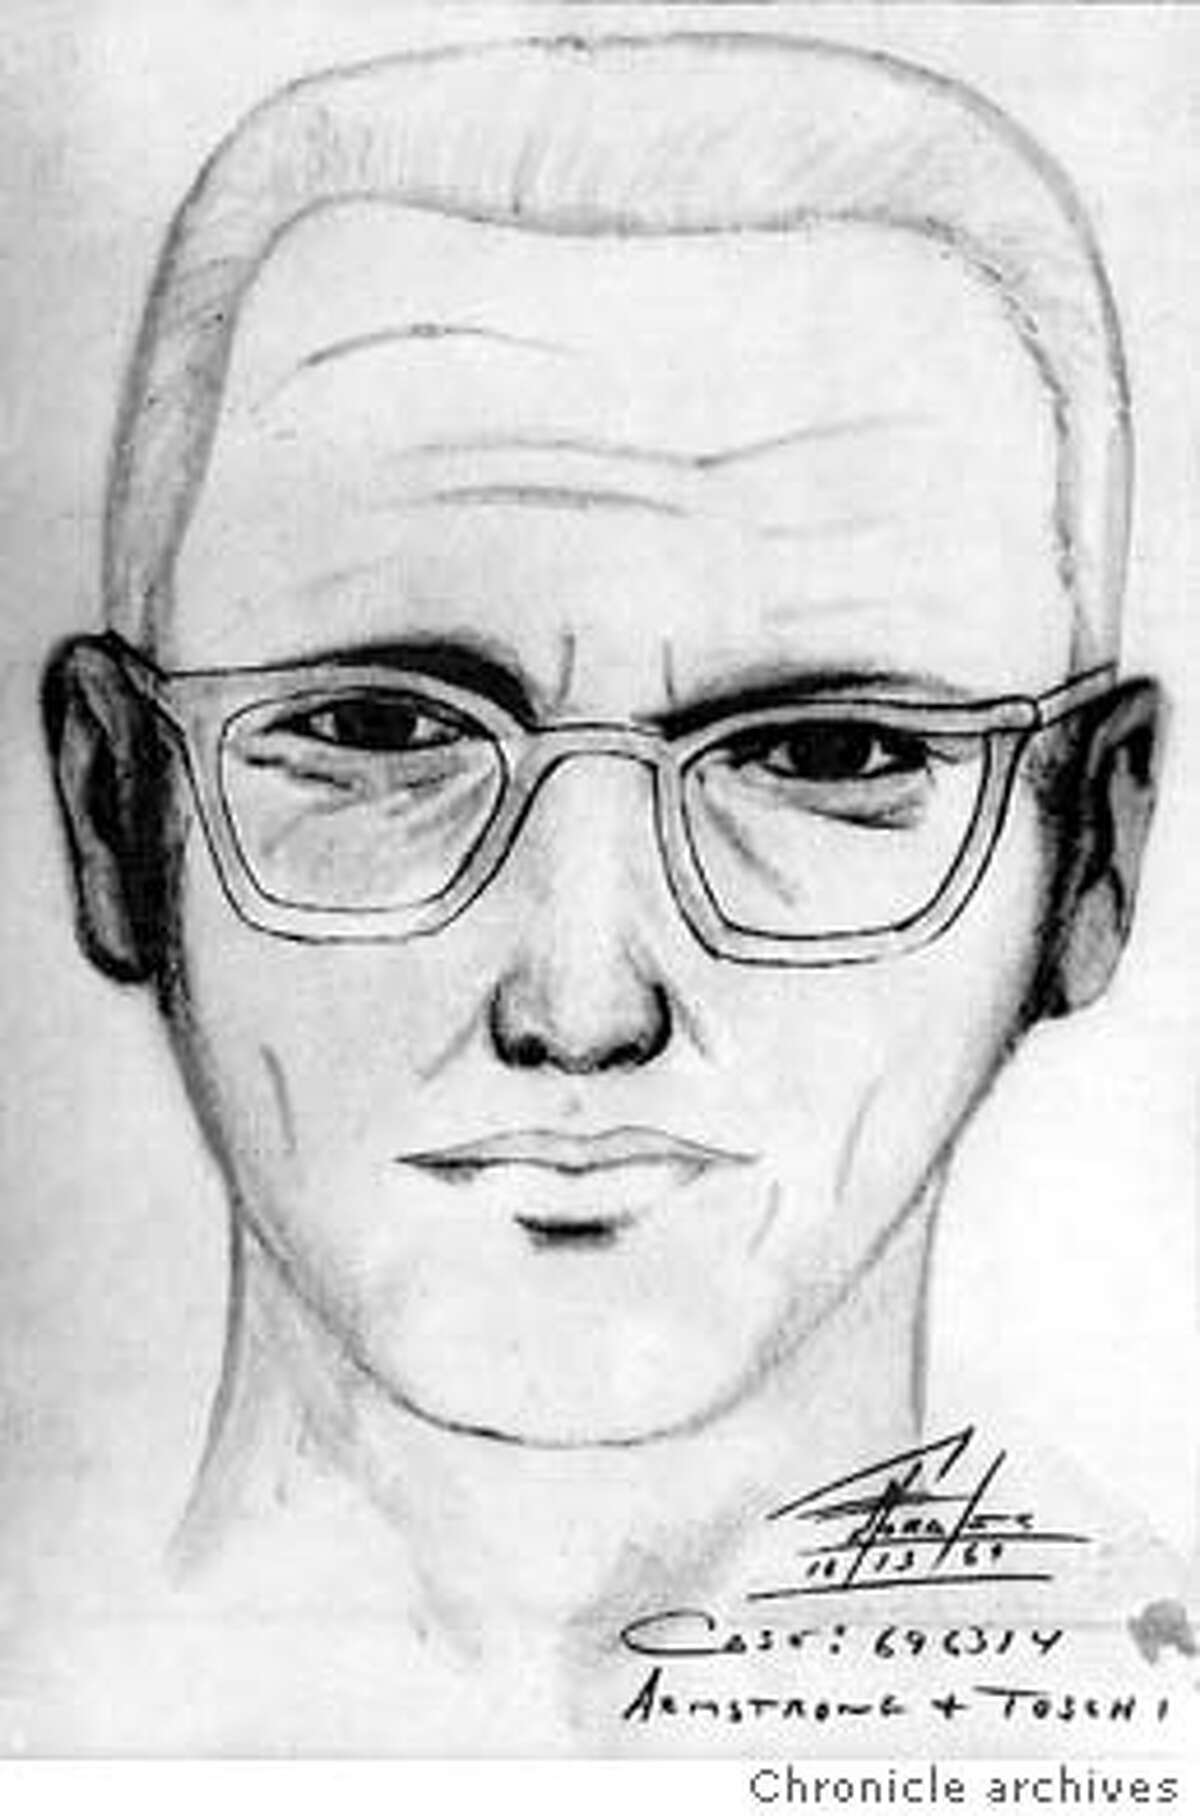 ZODIAC-C-14DEC99-SC-HO--Police sketch of the man suspected of being the